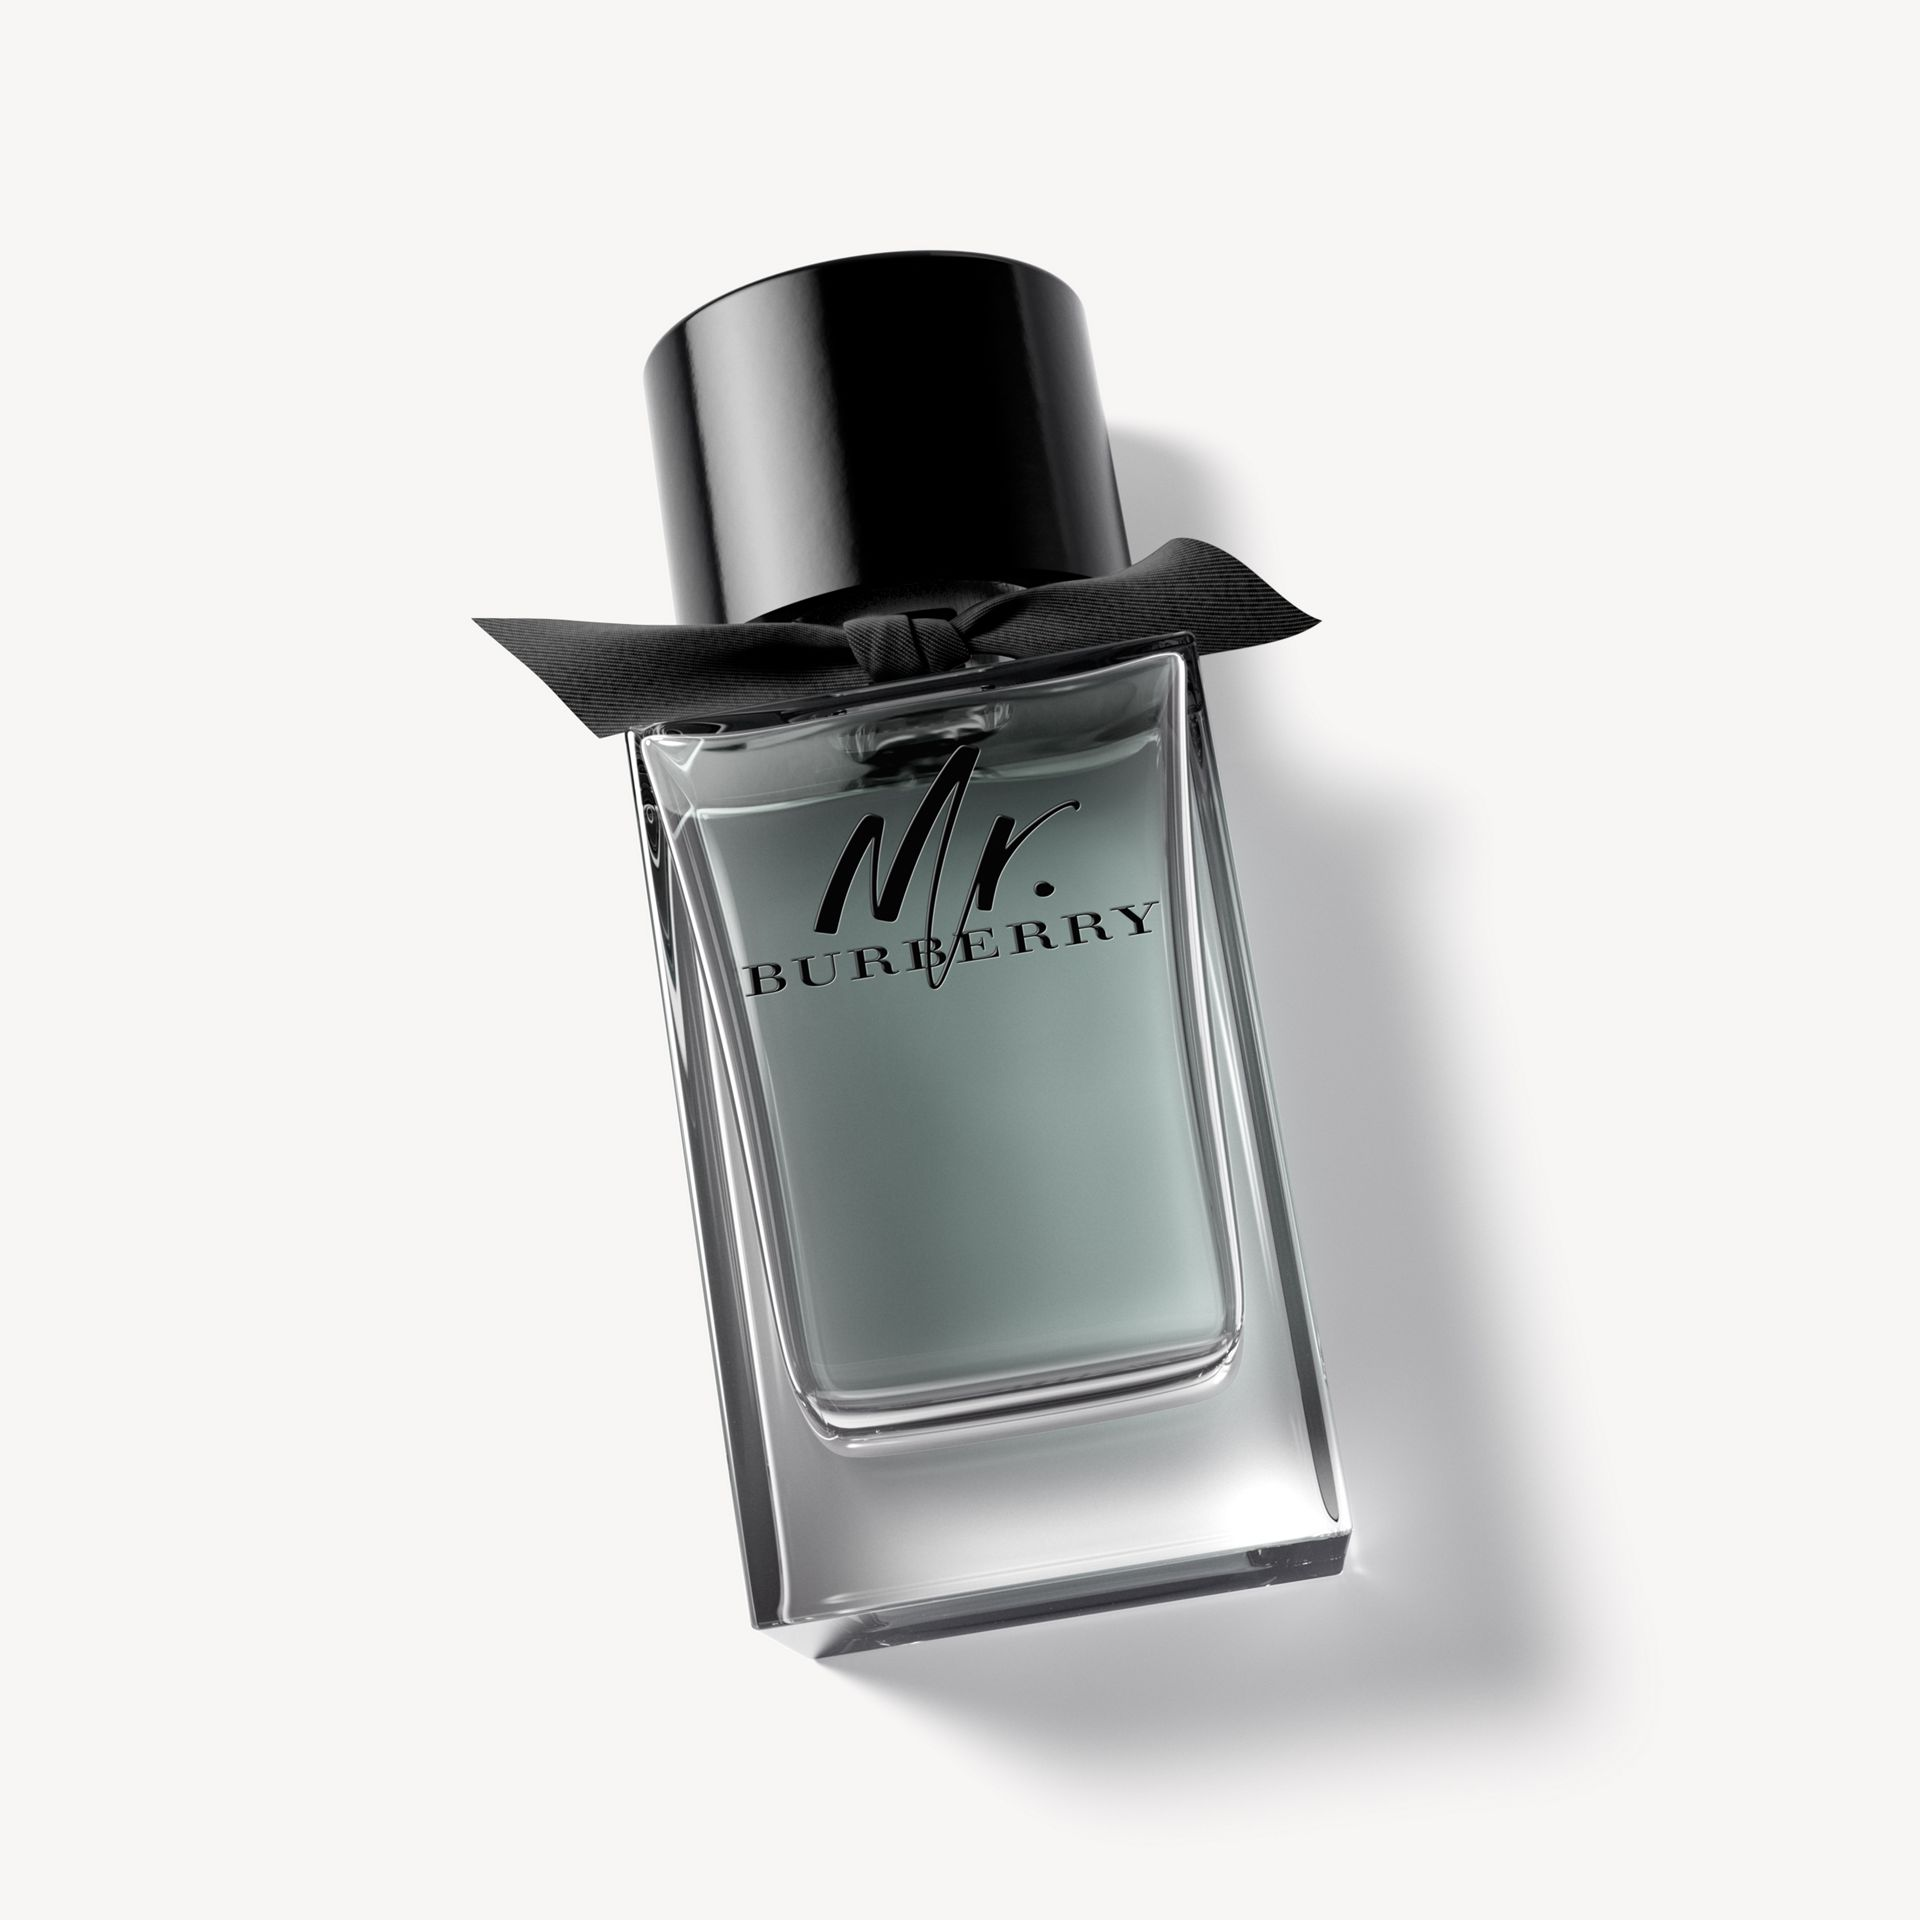 Mr. Burberry Eau de Toilette 1000 ml | Burberry - Galerie-Bild 1